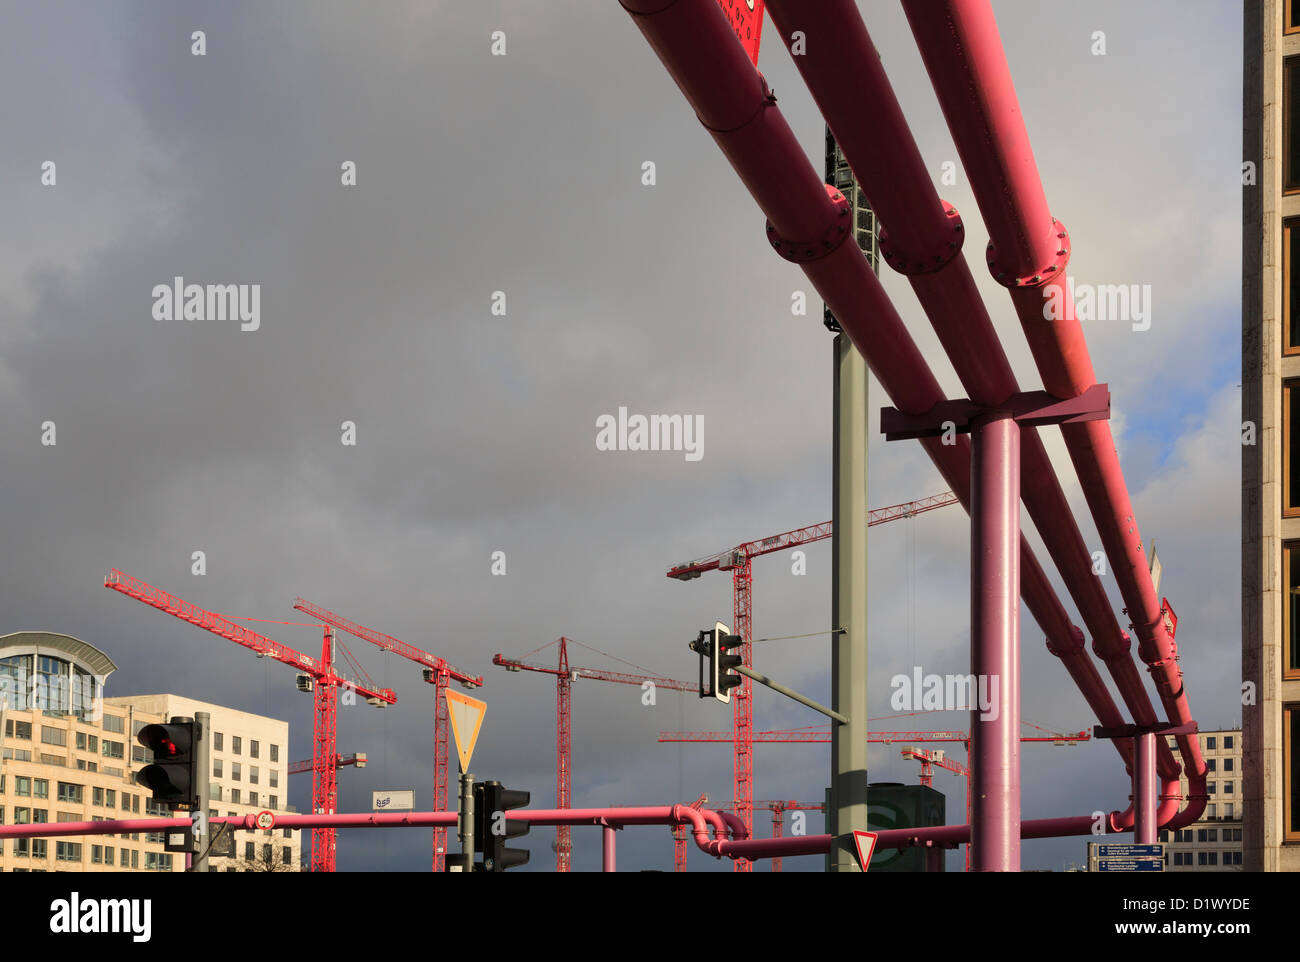 Overground pipes and cranes in new development on death strip in former east German sector of city at Potsdamer - Stock Image